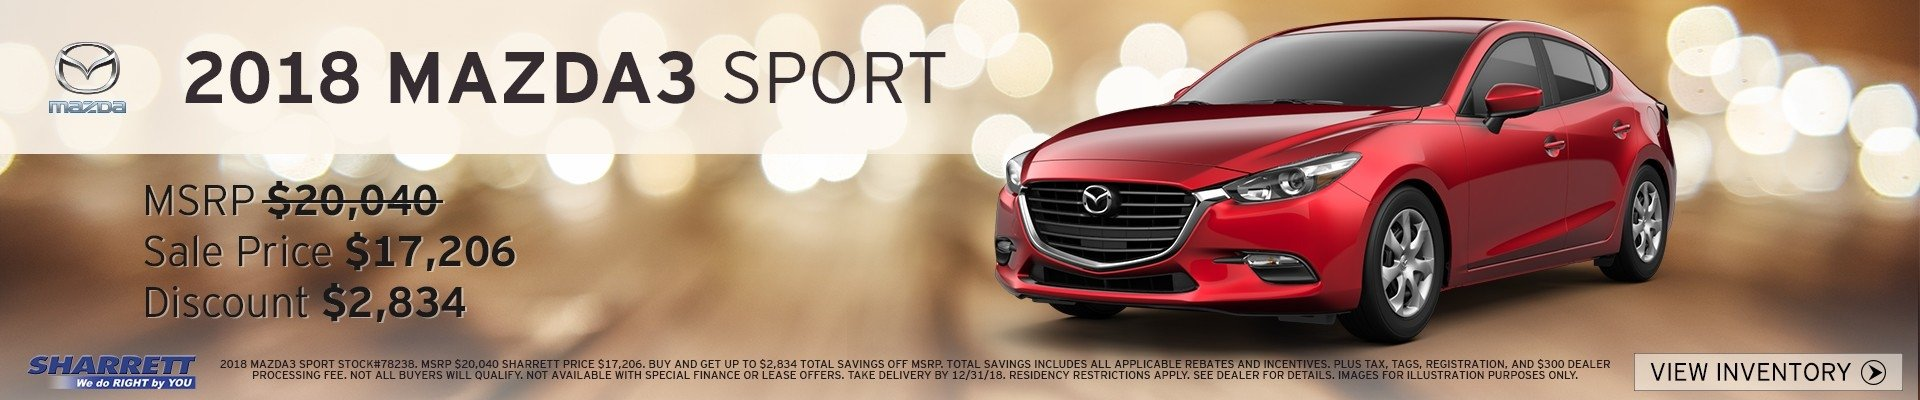 2018 Mazda3 Sport up to $2,834 off MSRP